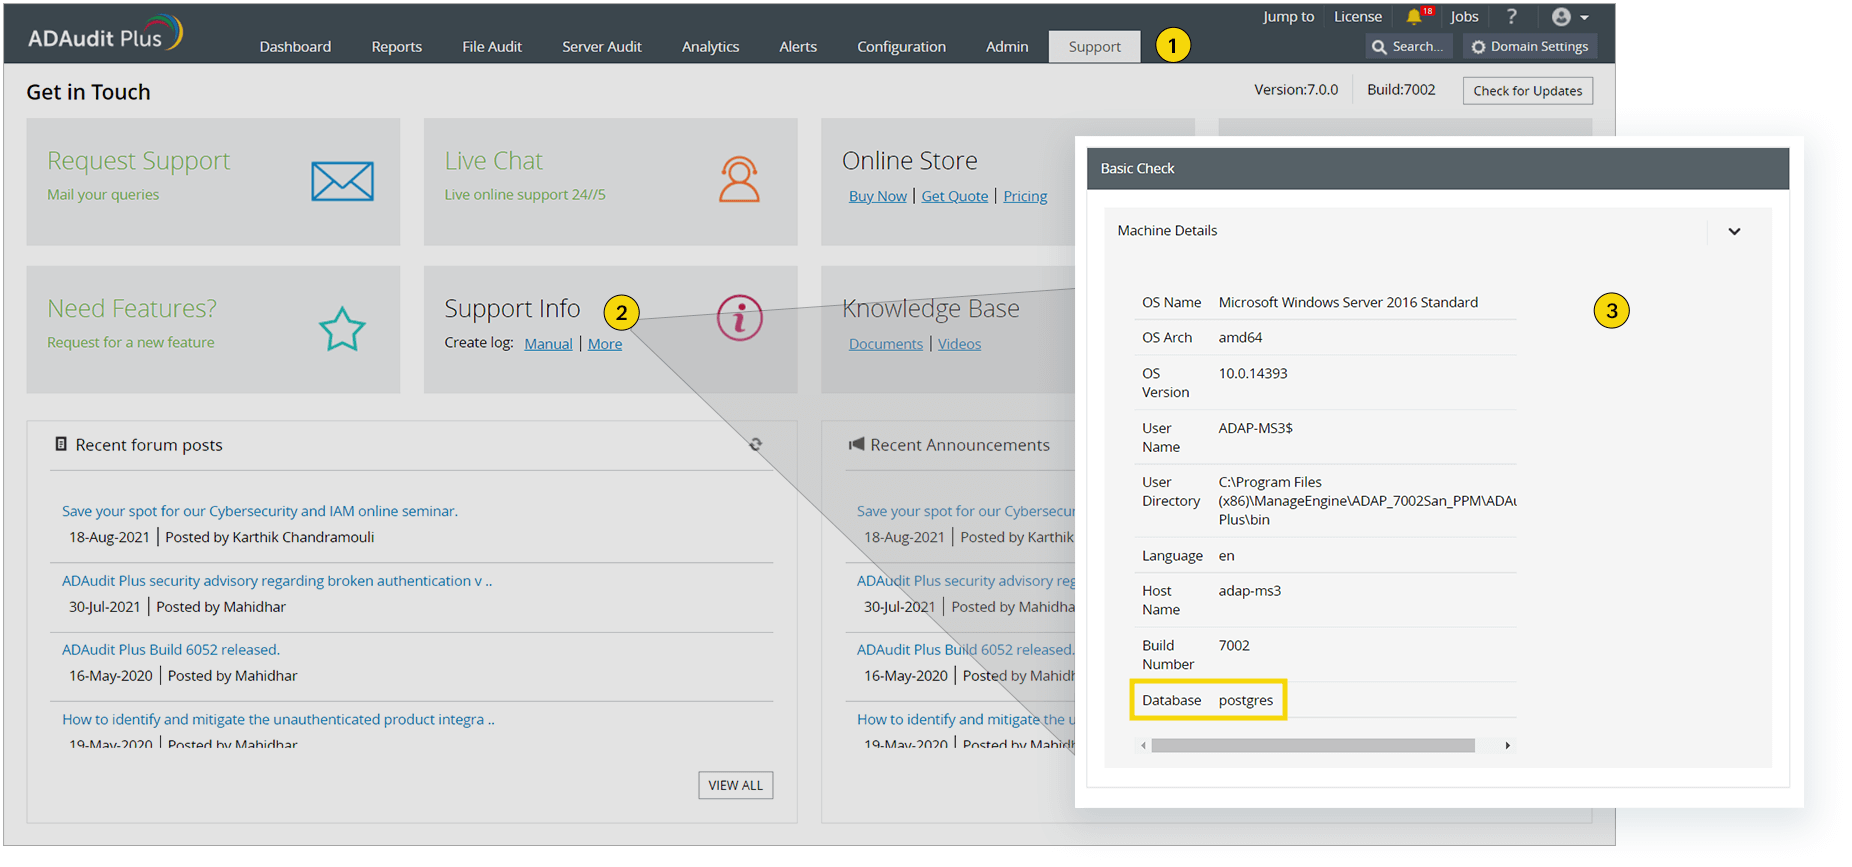 How do I find my database type?